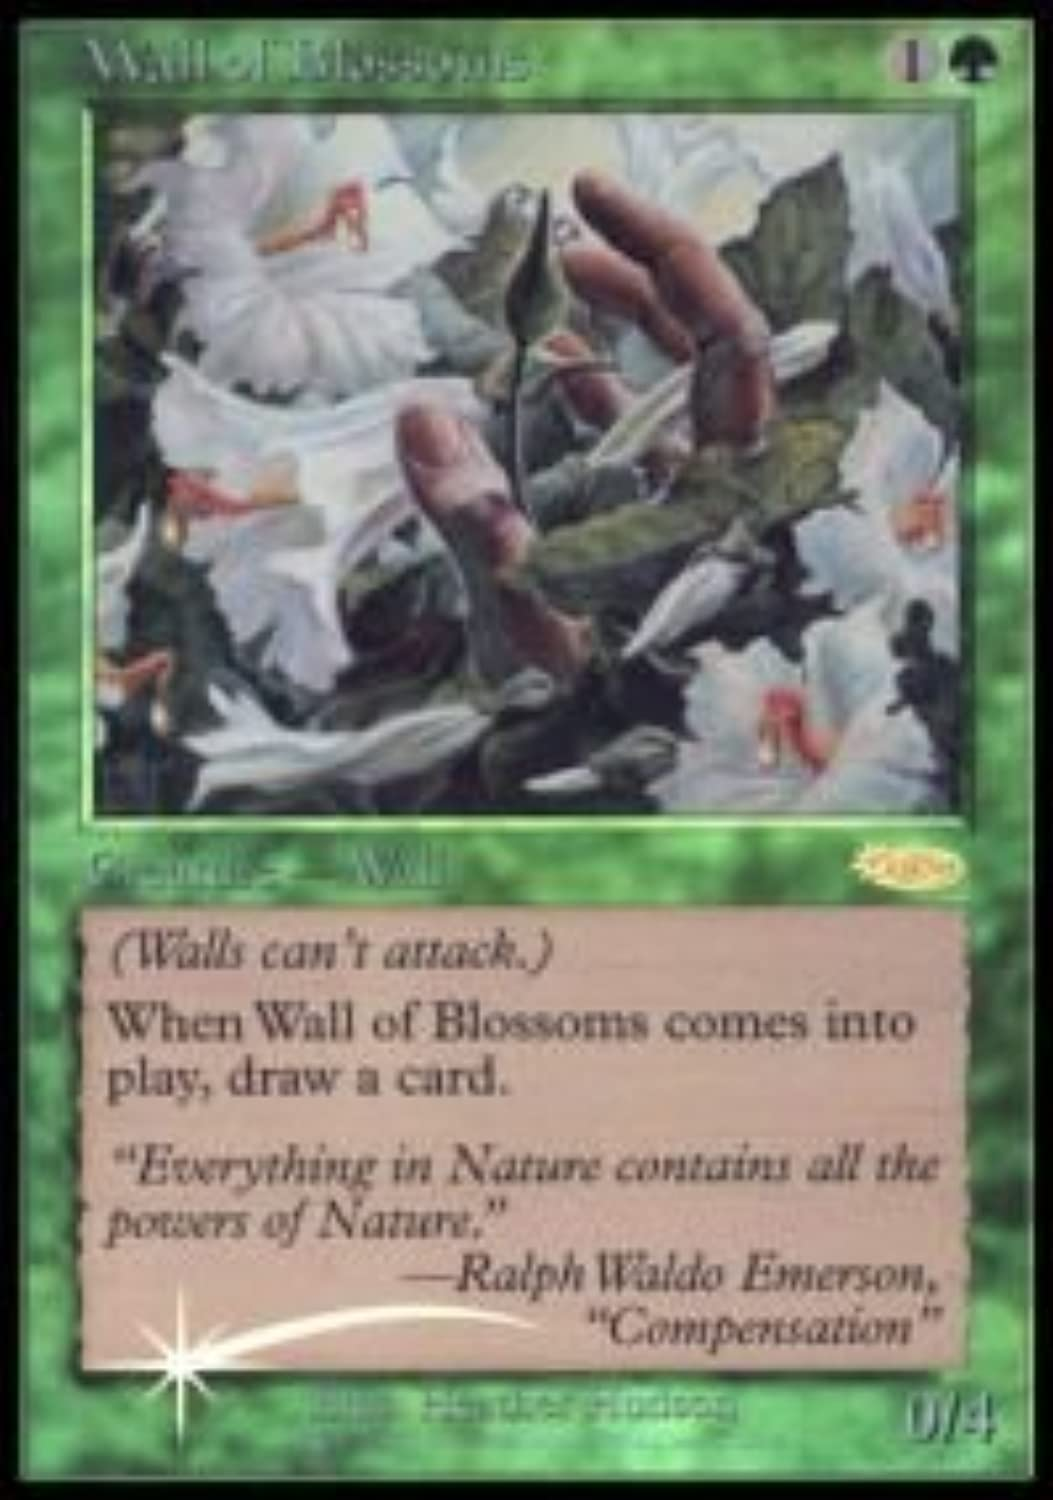 Magic  the Gathering  Wall of Blossoms  FNM 2002  FNM Promos  Foil by Magic  the Gathering